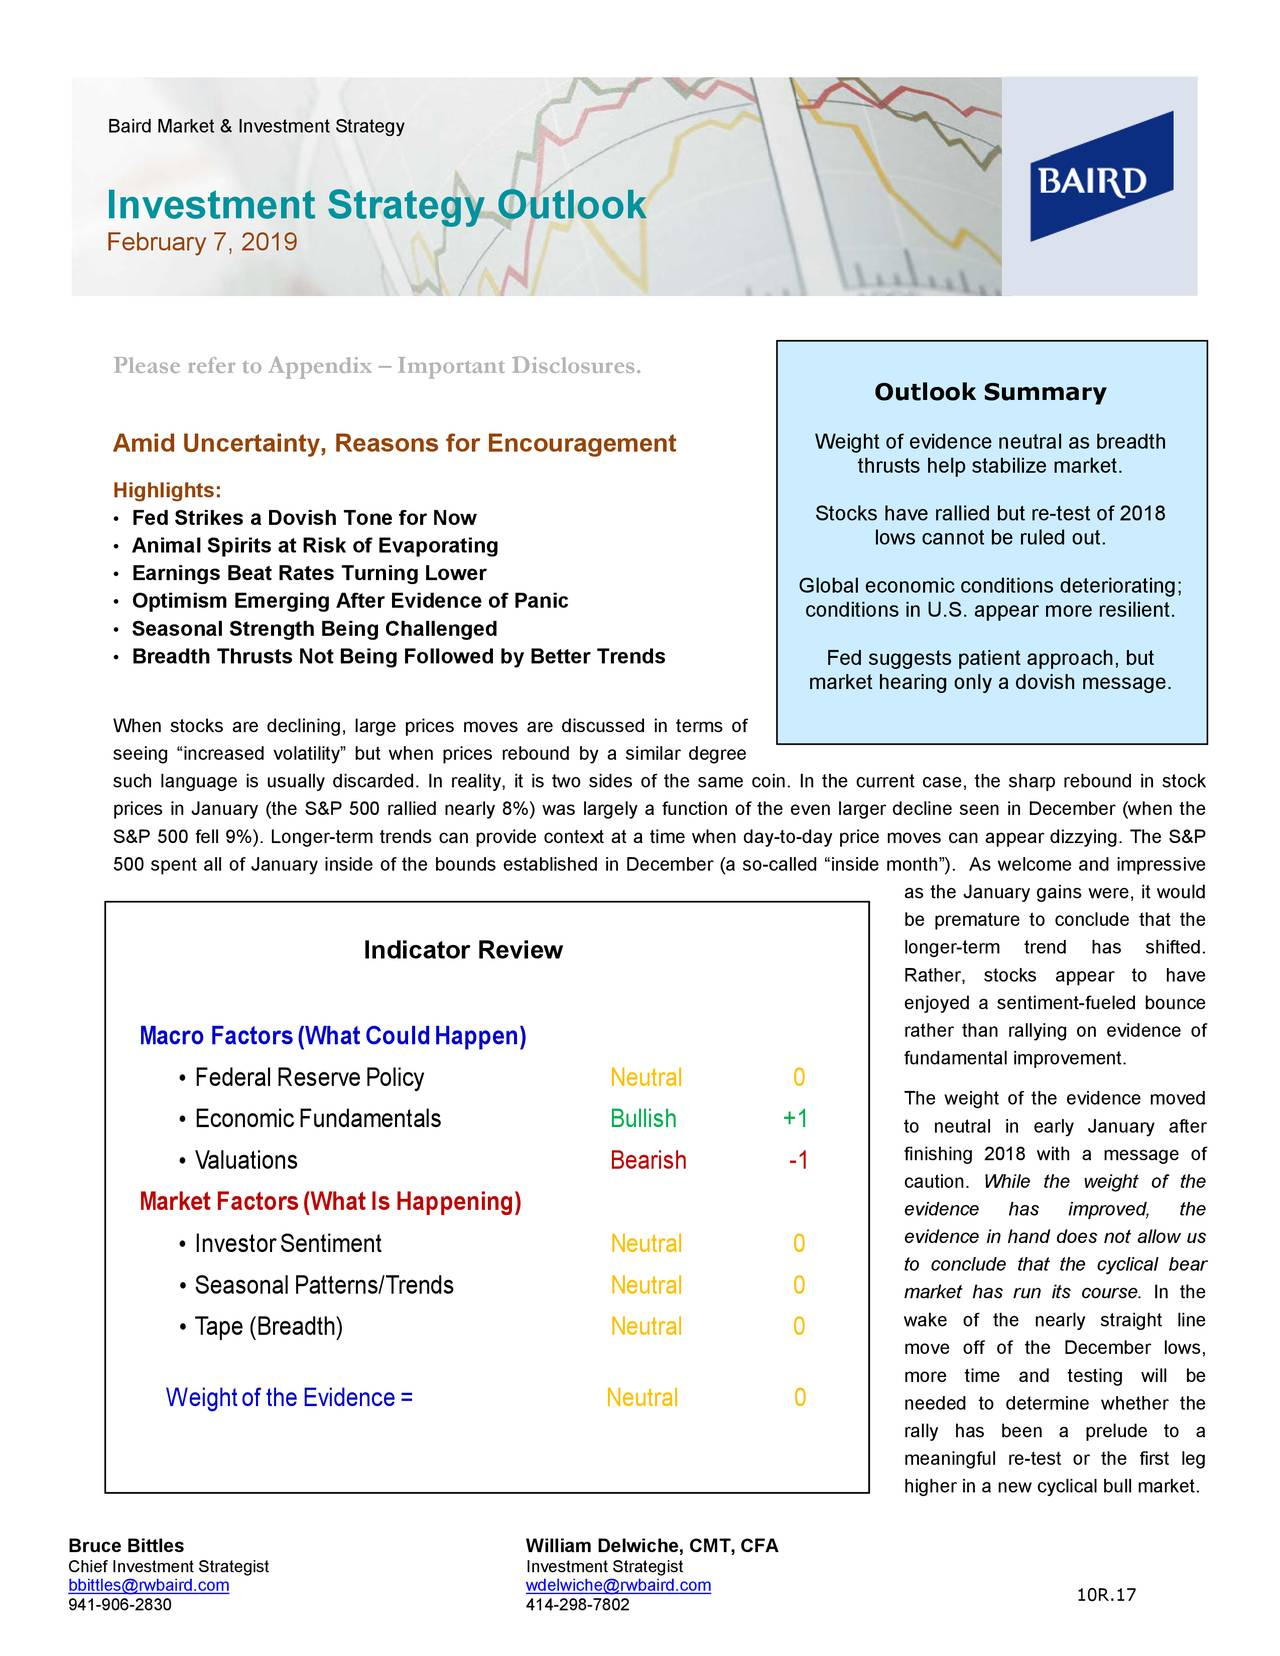 """Investment Strategy Outlook February 7, 2019 Please refer to Appendix – Important Disclosures. Outlook Summary Weight of evidence neutral as breadth Amid Uncertainty, Reasons for Encouragement thrusts help stabilize market. Highlights: • Fed Strikes a Dovish Tone for Now Stocks have rallied but re-test of 2018 • Animal Spirits at Risk of Evaporating lows cannot be ruled out. • Earnings Beat Rates Turning Lower Global economic conditions deteriorating; • Optimism Emerging After Evidence of Panic conditions in U.S. appear more resilient. • Seasonal Strength Being Challenged • Breadth Thrusts Not Being Followed by Better Trends Fed suggests patient approach, but market hearing only a dovish message. When stocks are declining, large prmoves are discussed in terms of seeing """"increased volatility"""" but when prices rebound by a similar degree such language is usually discarded. In reality, it is two sides of the same coin. In the current case, the tockp rebound in s prices in January ( the S&P 500 rallied nearly 8%) was largely a function of the even larger decline seen in December (when the S&P 500 fell 9%). Longer-term trends can provide context at a time when day -to-day price moves can appear dizzying. The S&P 500 spent all of January inside of the bounds established in December (a so-called """"insAs welcome and impressive as the January gains were, it would be premature to conclude that the longer-term trend has shifted. Indicator Review Rather, stocks appear to have enjoyed a sentiment -fueled bounce rather than rallying on evidence of Macro Factors (What Could Happen) fundamental improvement. • Federal Reserve Policy Neutral 0 The weight of the evidence moved • Economic Fundamentals Bullish +1 to neutral in early January after finishing 2018 with a message of • Valuations Bearish -1 caution. While the weight of the Market Factors (What Is Happening) evidence has improved, the evidence in hand does n ot allow us • Investor Sentiment Neutral 0 to conclude that the cyclic"""